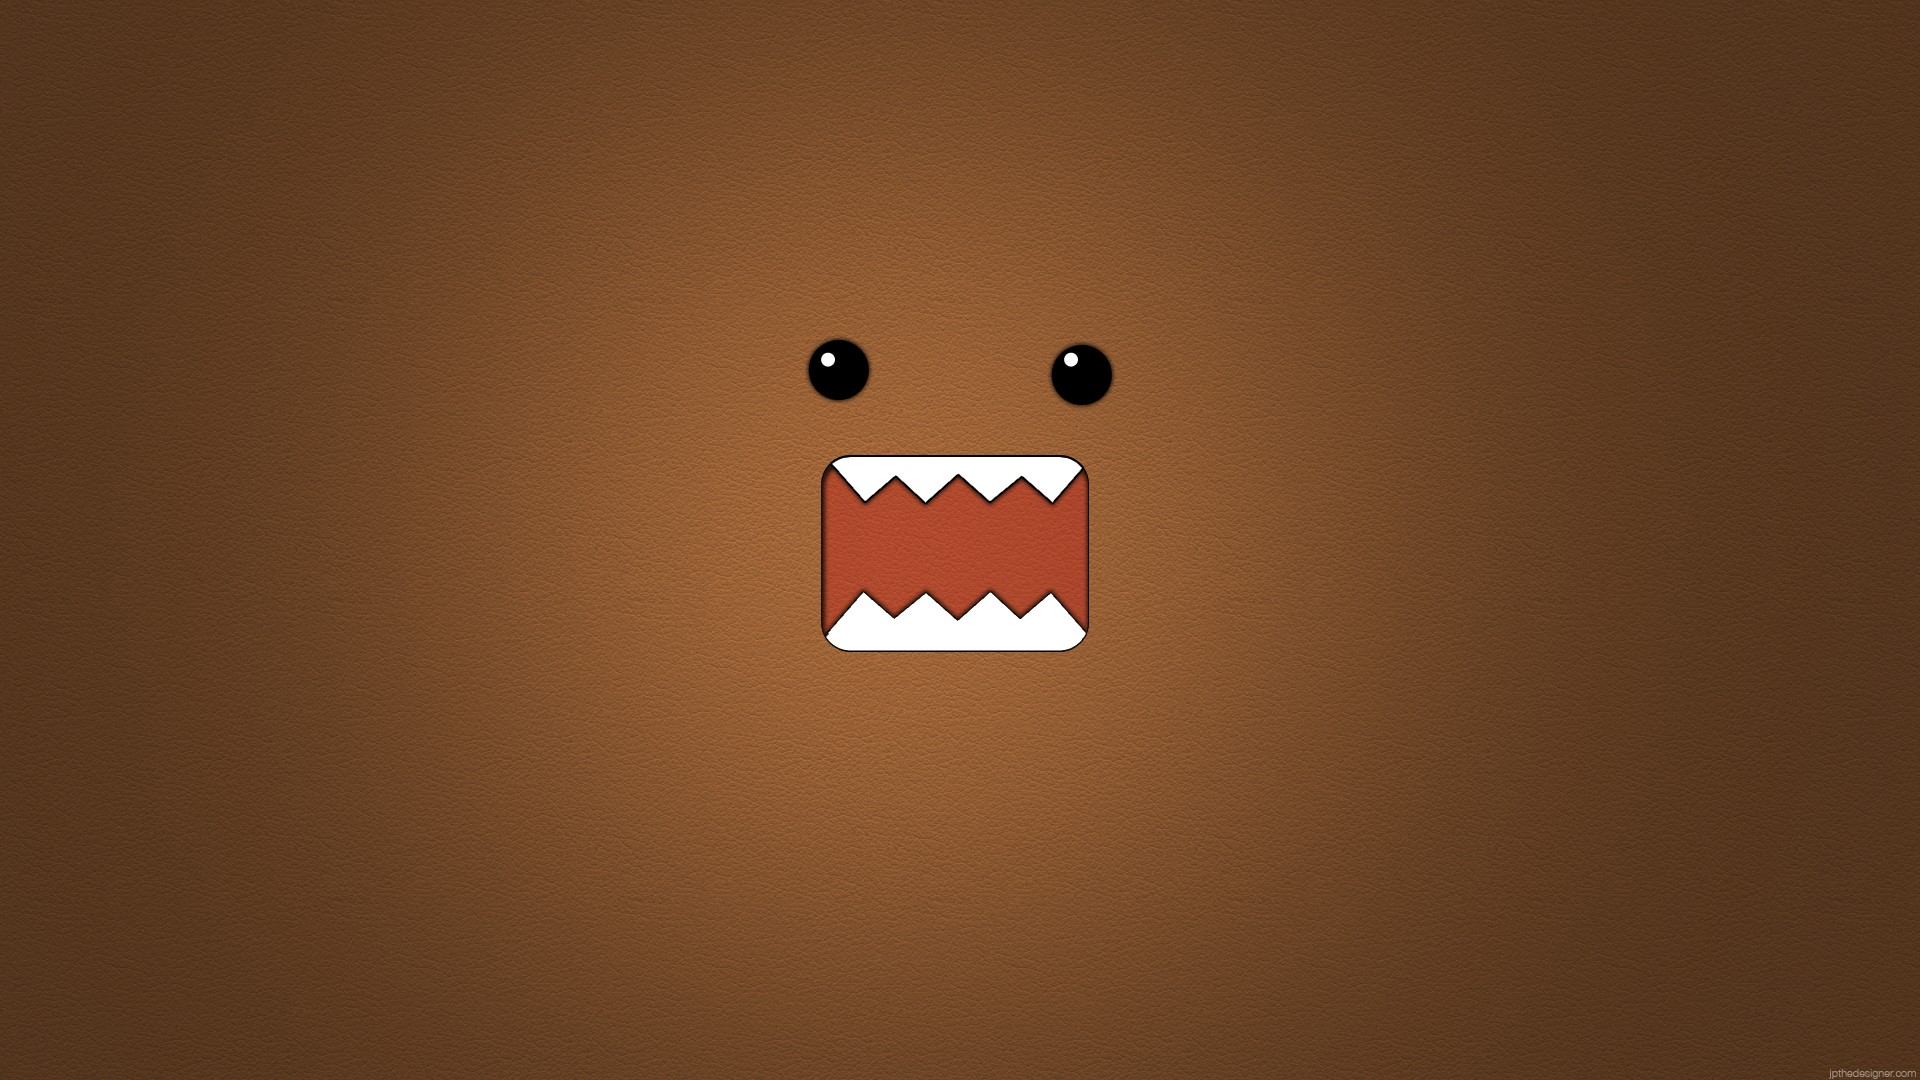 Awesome Cute Wallpapers For Android Nerd Wallpaper 183 ① Download Free Cool High Resolution